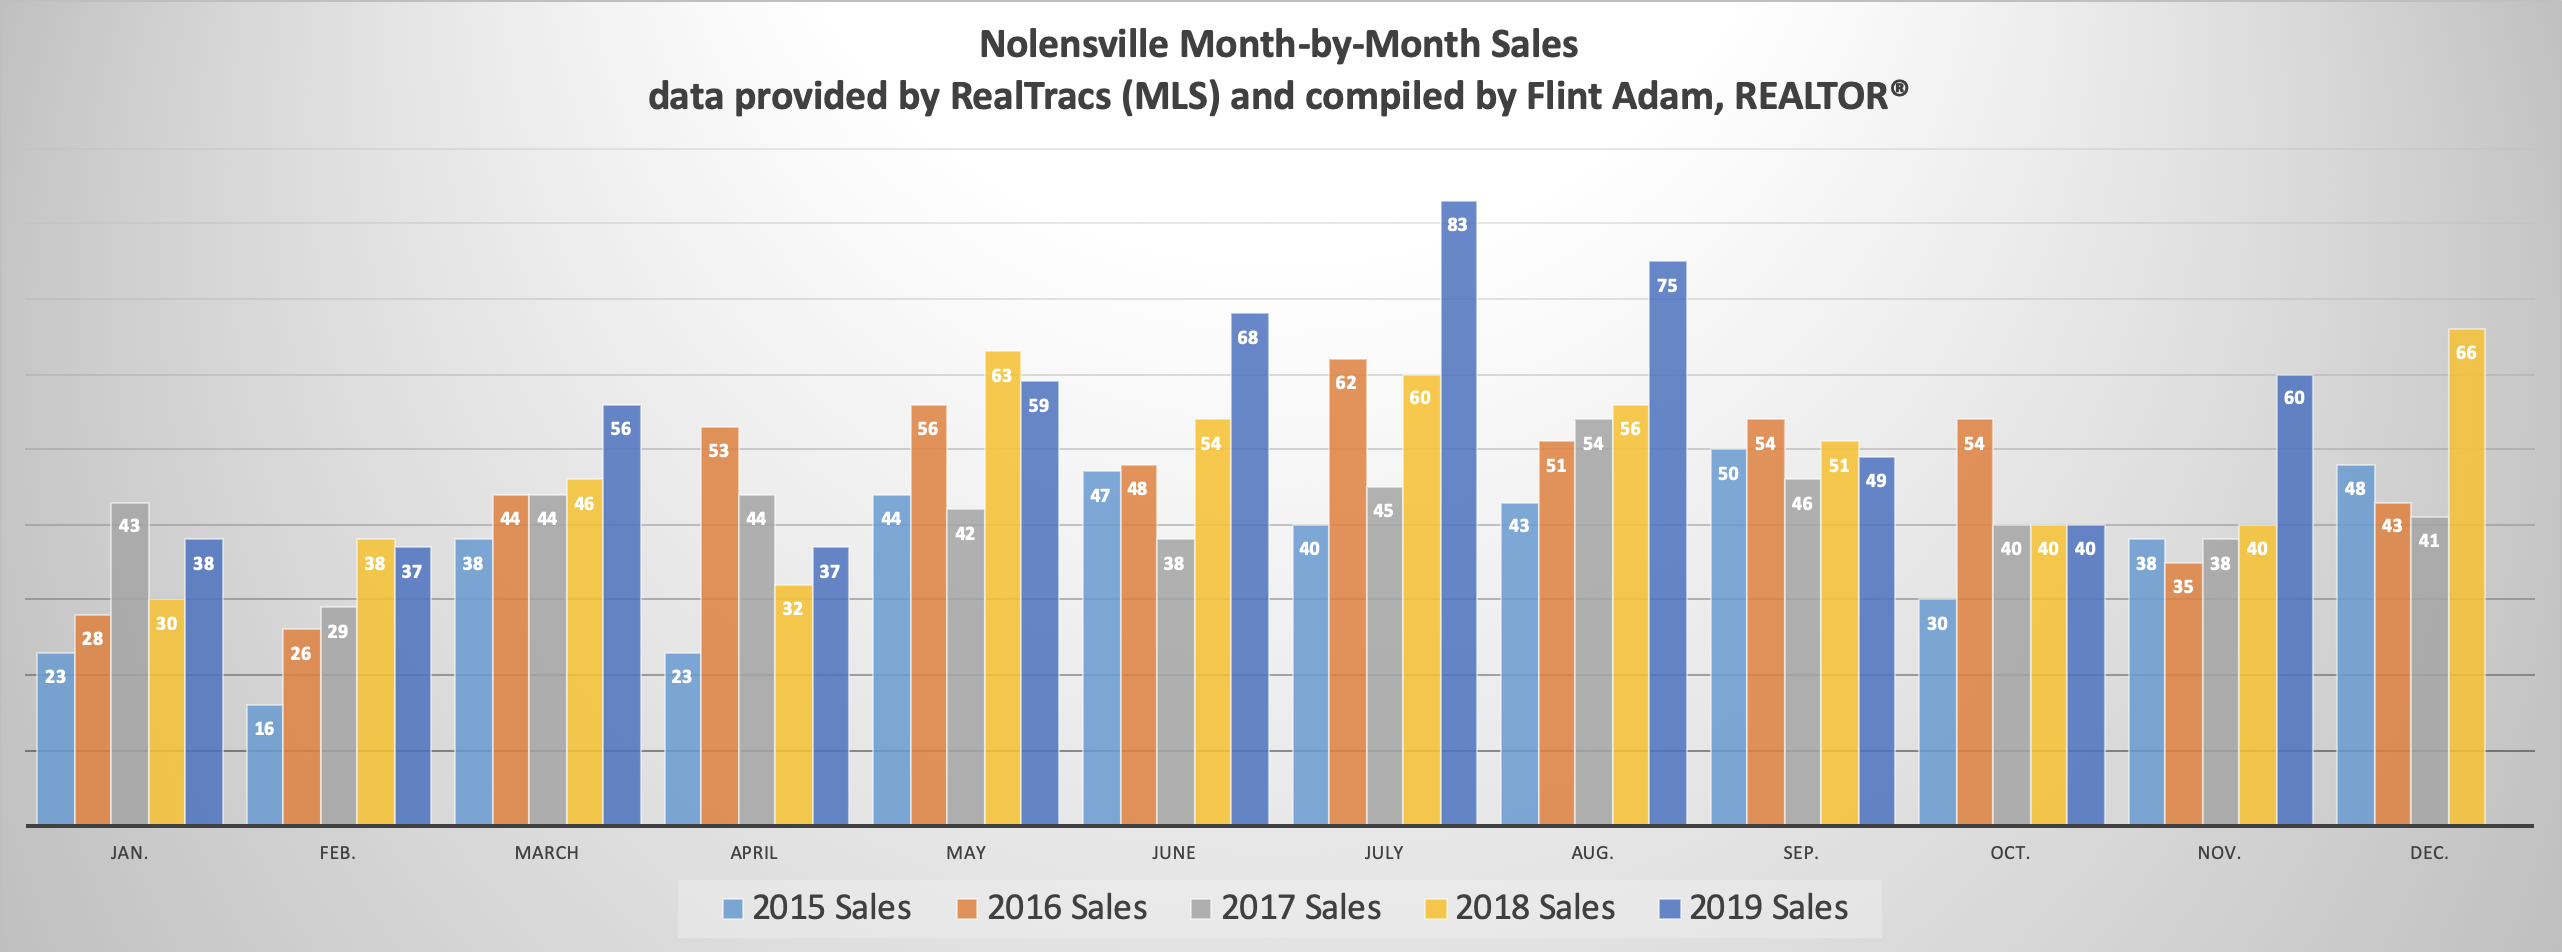 Nolensville Month-by-Month Sales November 2019